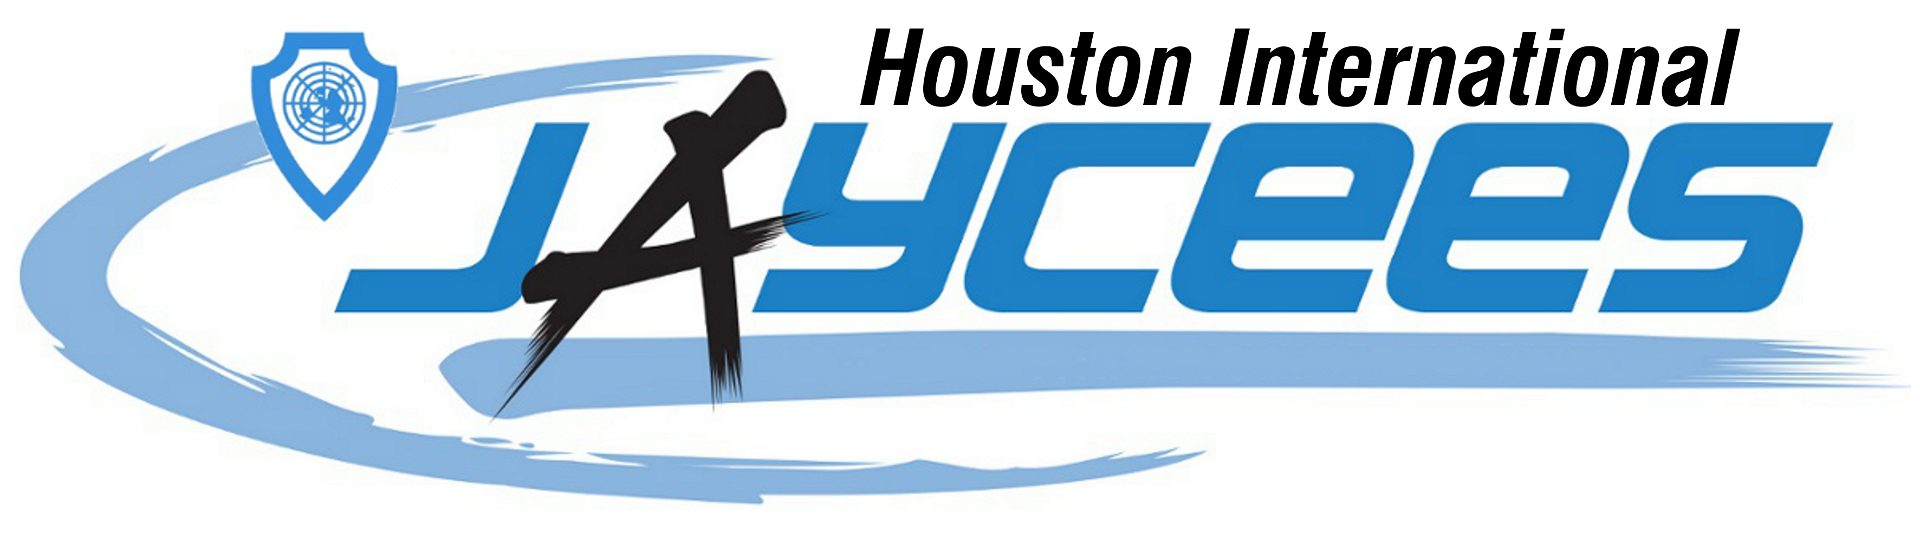 Houston International Jaycees